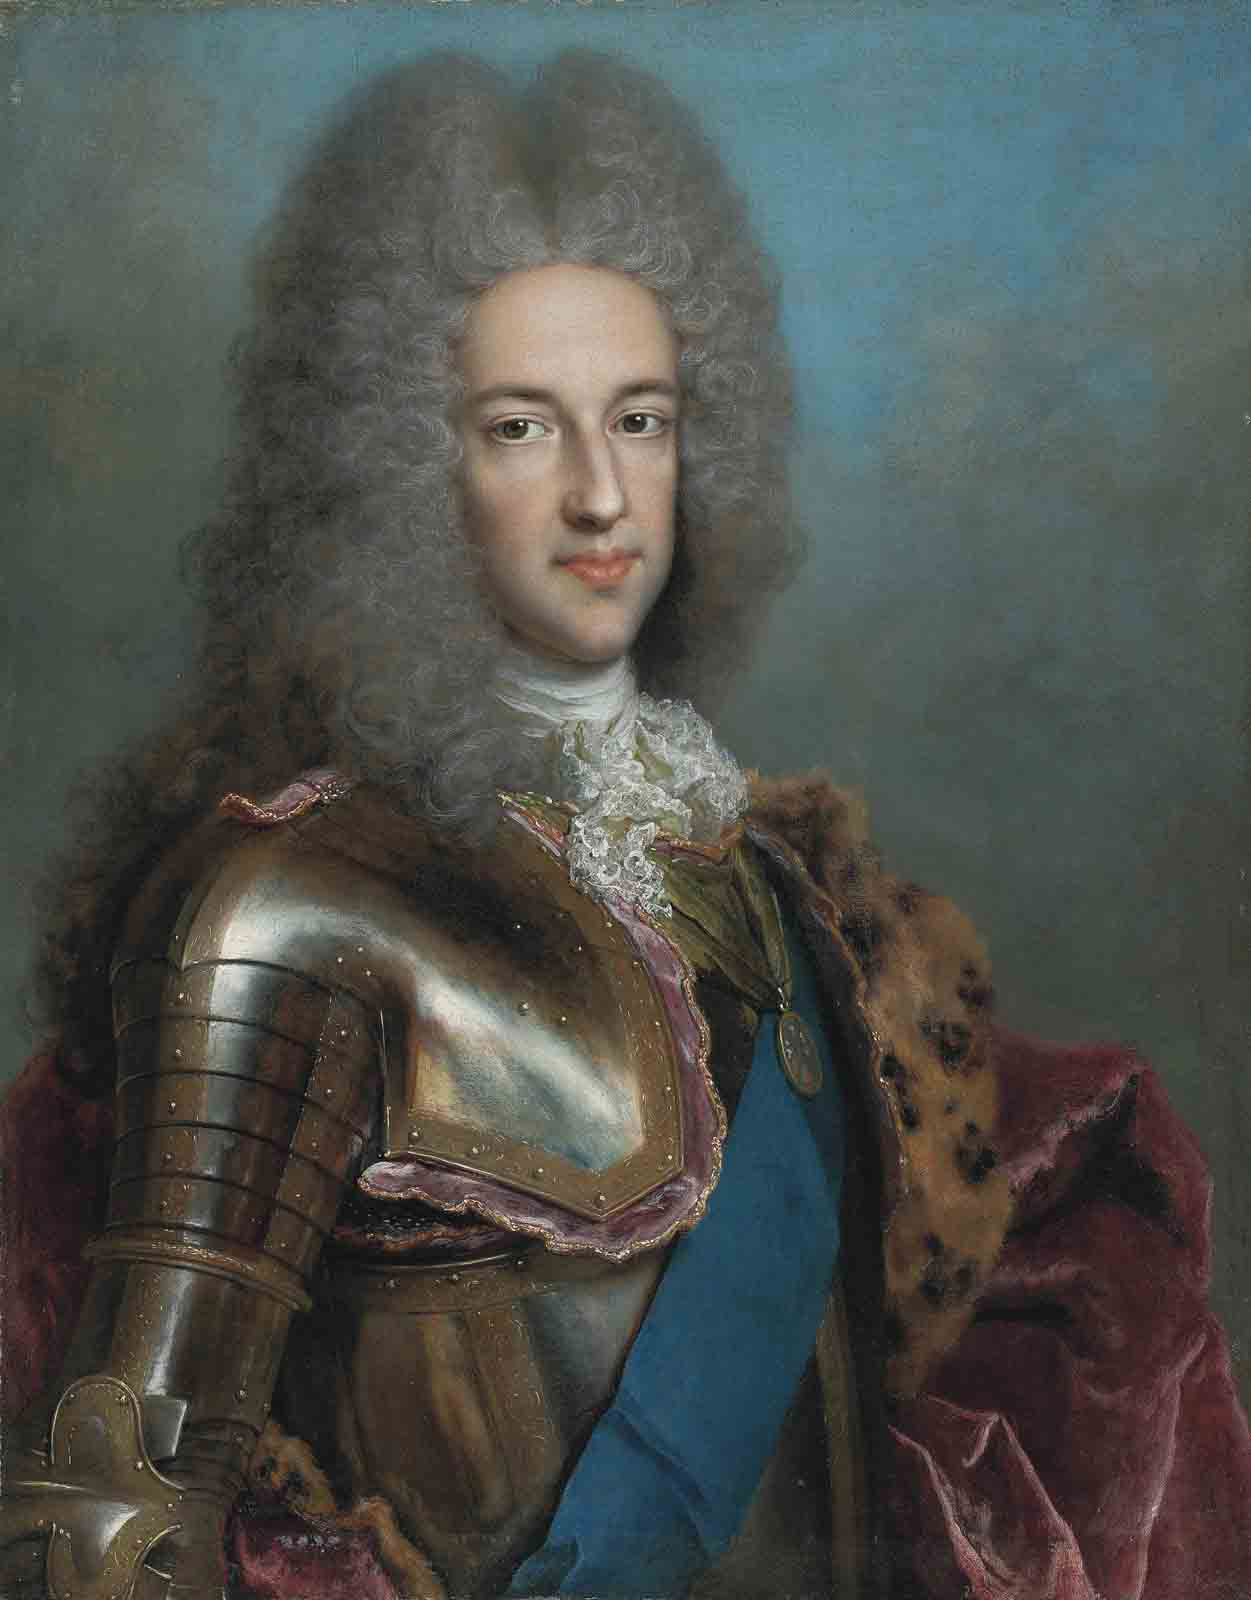 Portrait of James Francis Edward Stuart, the Old Pretender (1688-1766), half-length, in armour, with the sash of the Order of the Garter and the medal of the Order of the Thistle